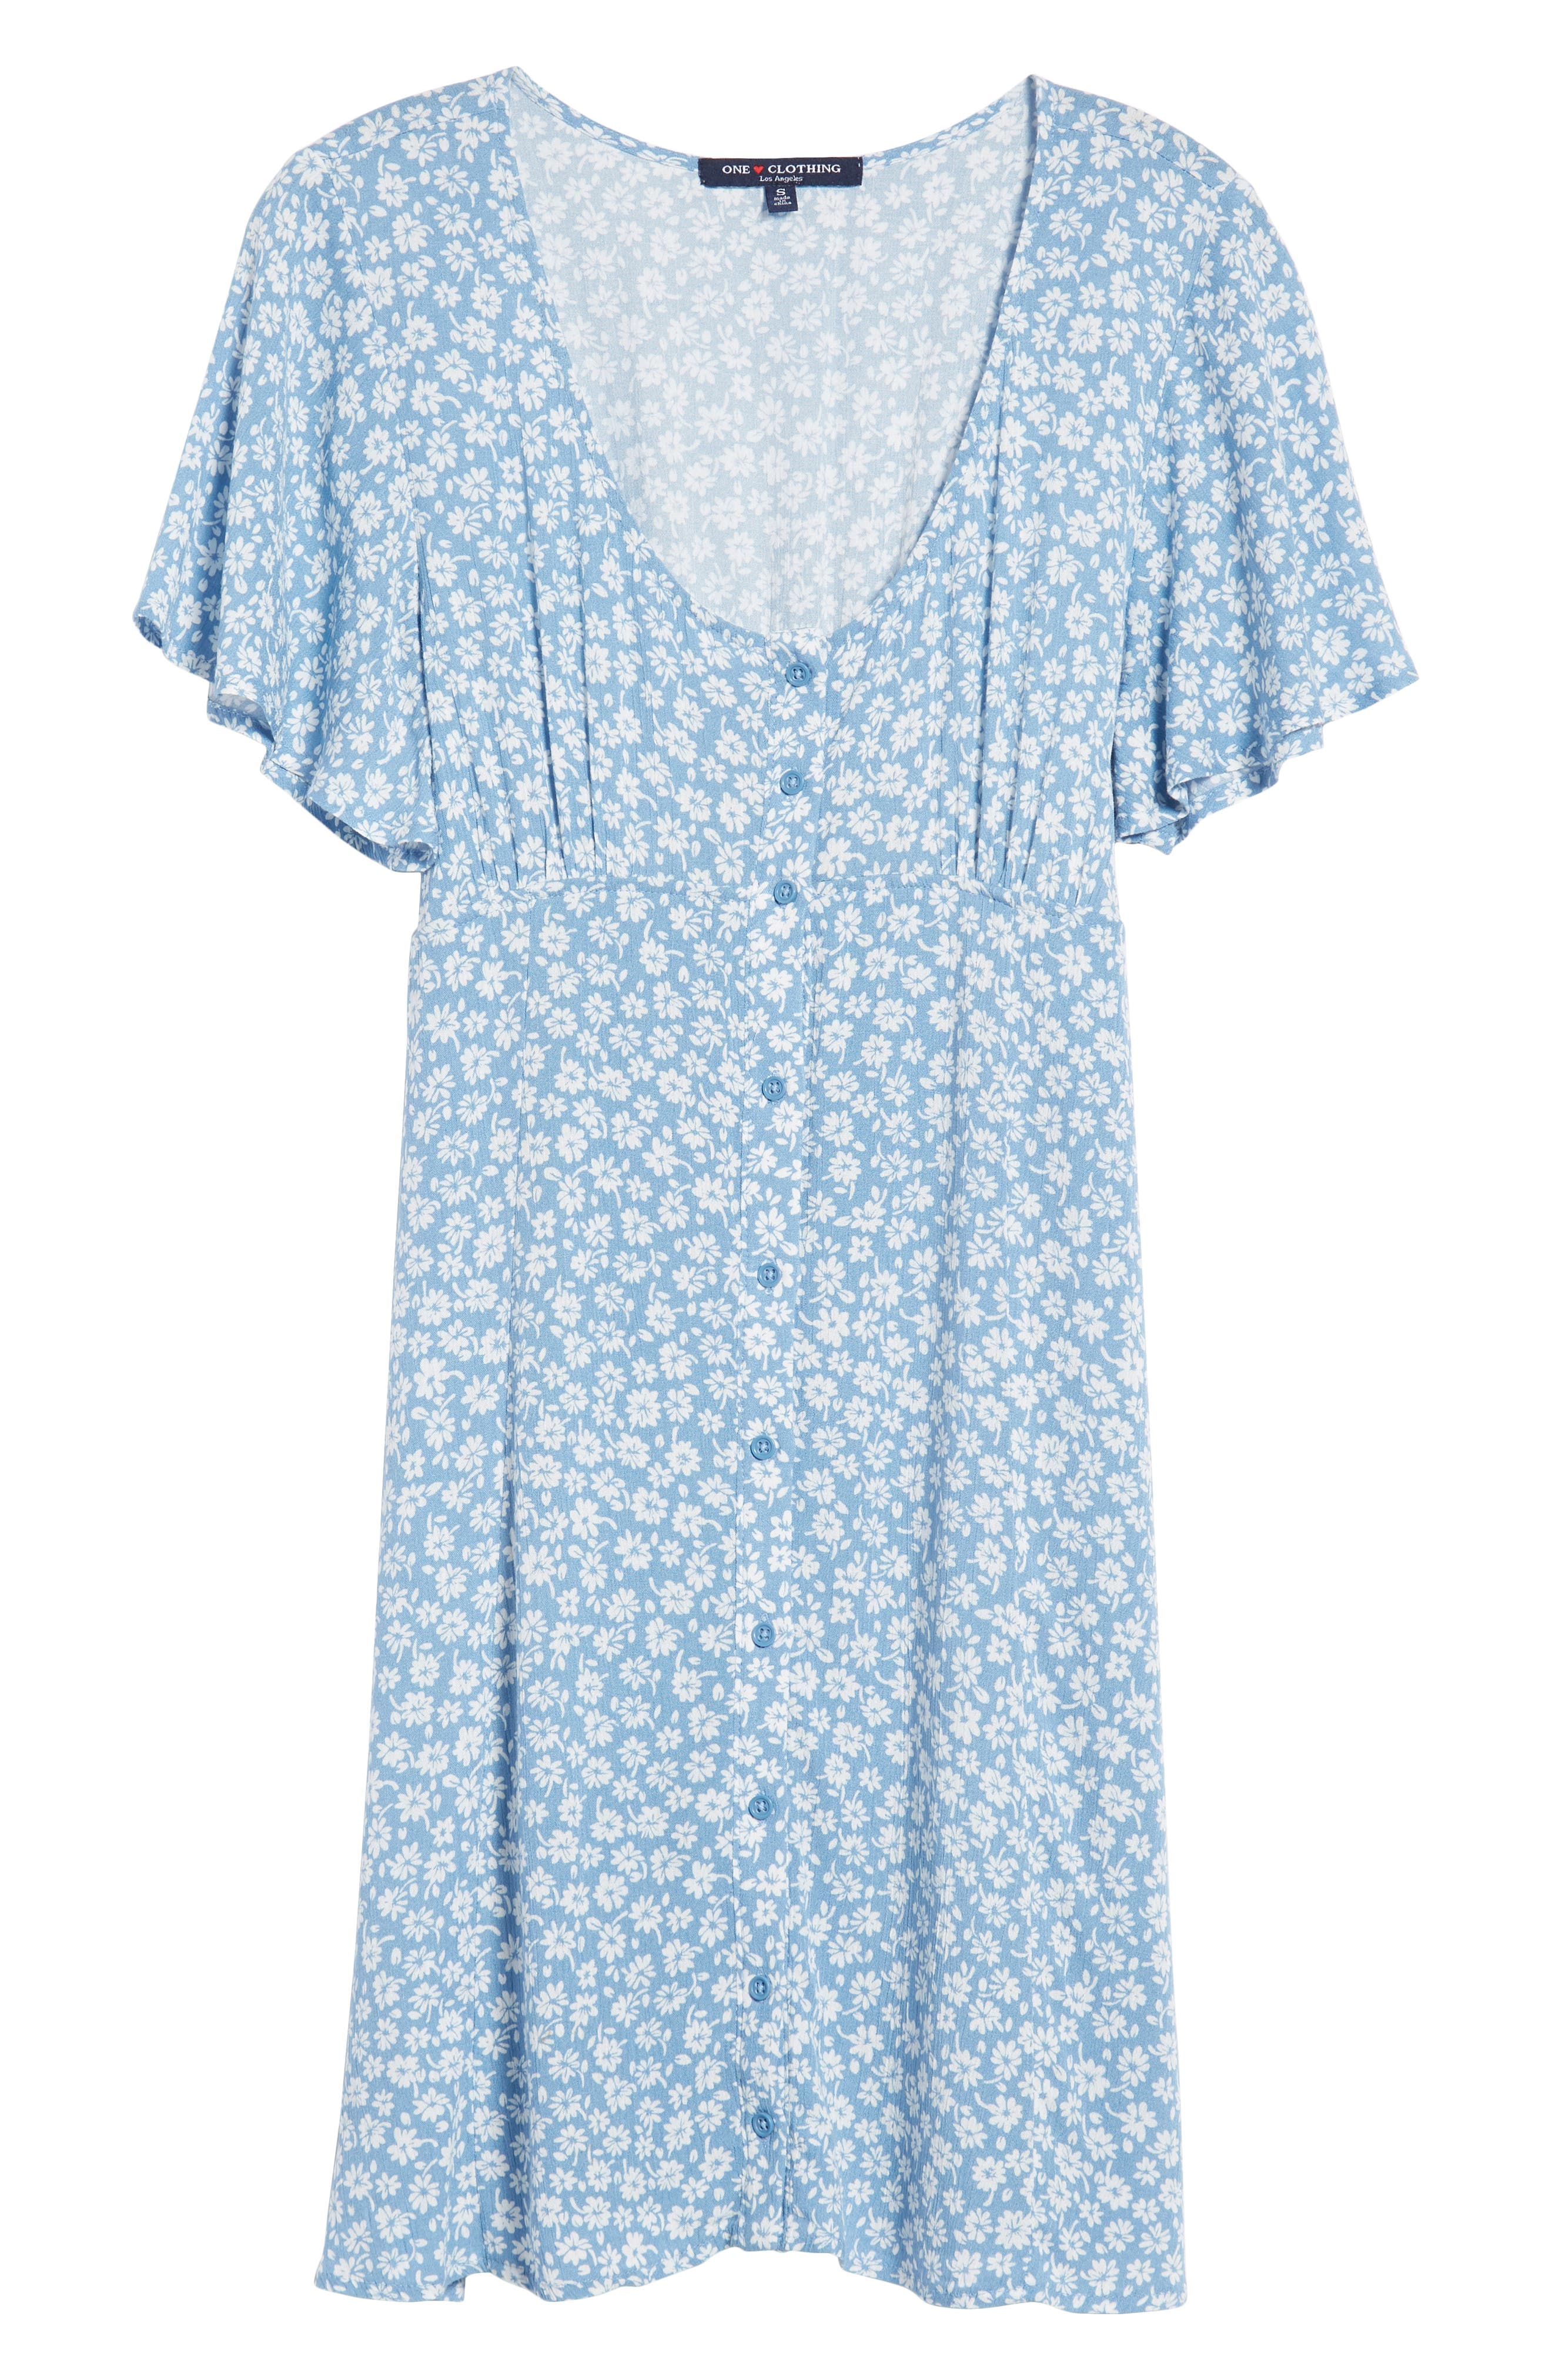 Floral Button Front Dress,                             Alternate thumbnail 7, color,                             Chambray